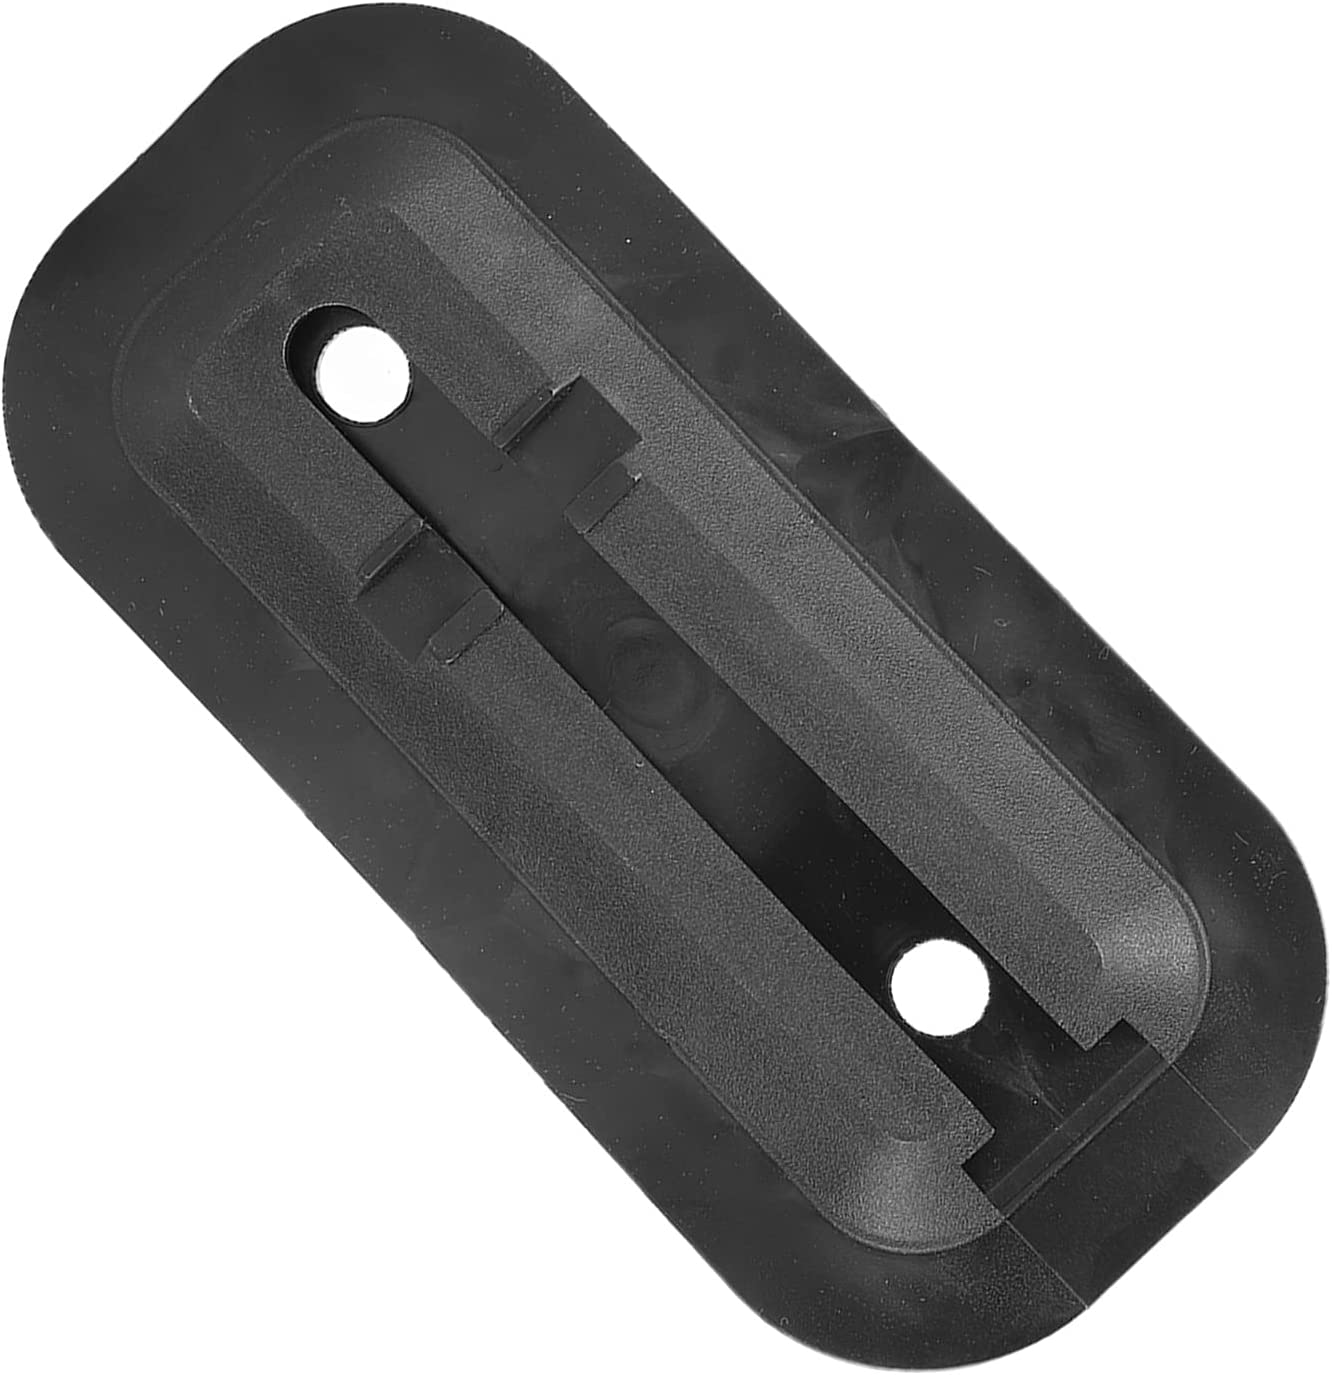 Max 87% OFF Center Fin Surfboard Base Detachab Support Central Fish Max 89% OFF